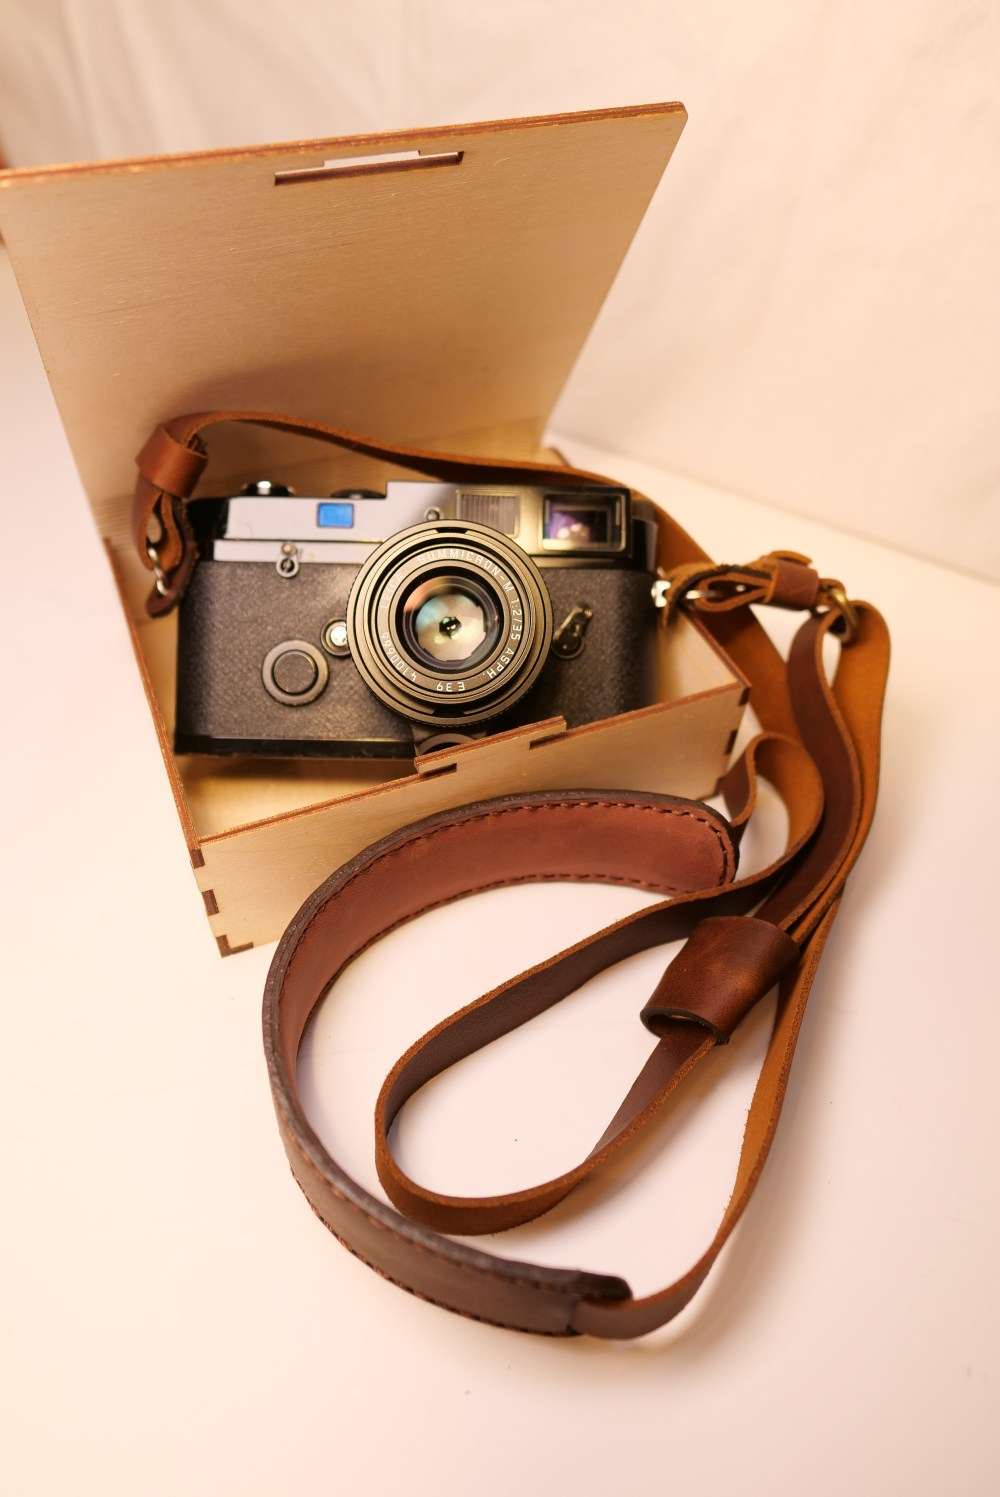 eric-kim-henri-shoulder-strap-crema-brown-box-1068696.jpg